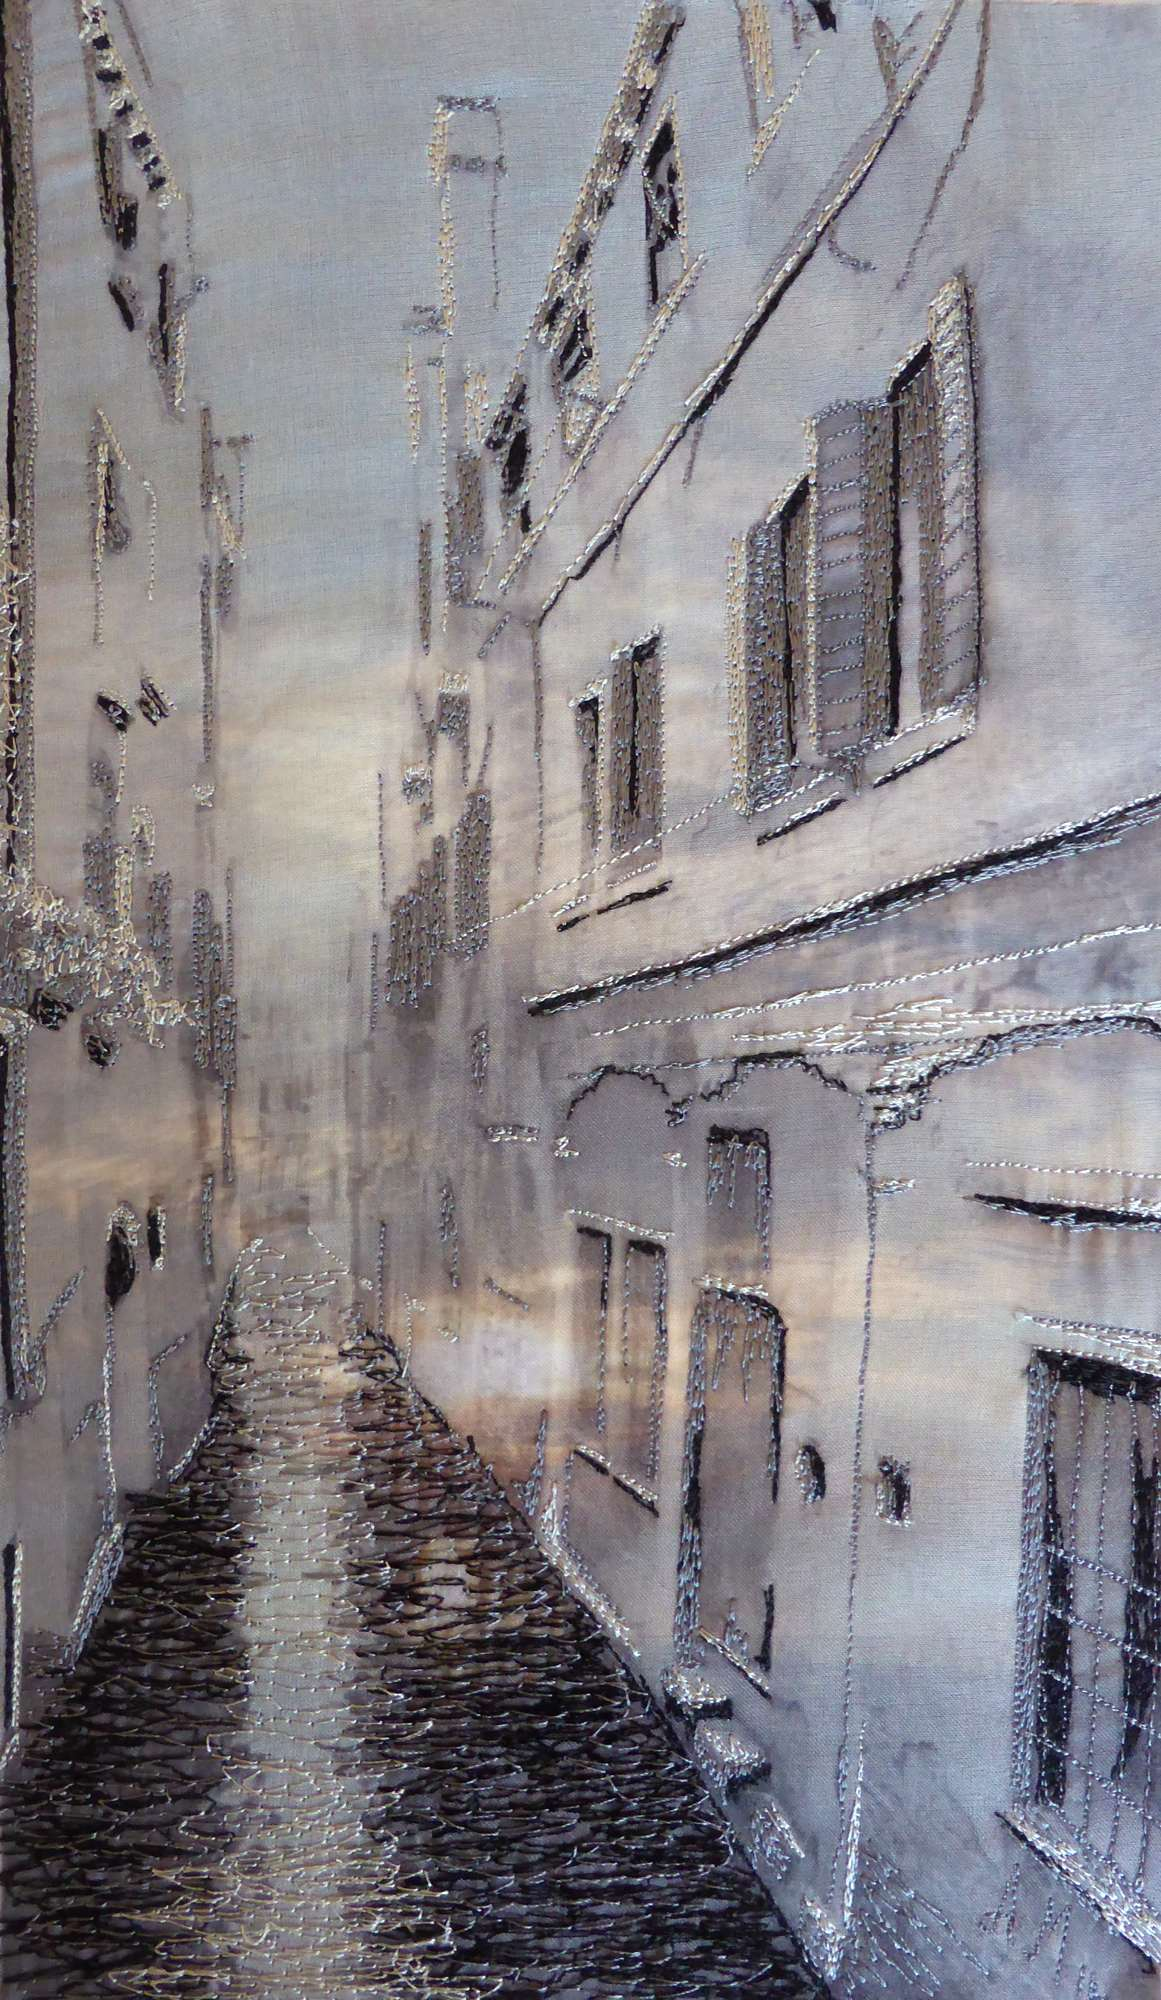 Venice to Broome No 4 by Andrea McCallum